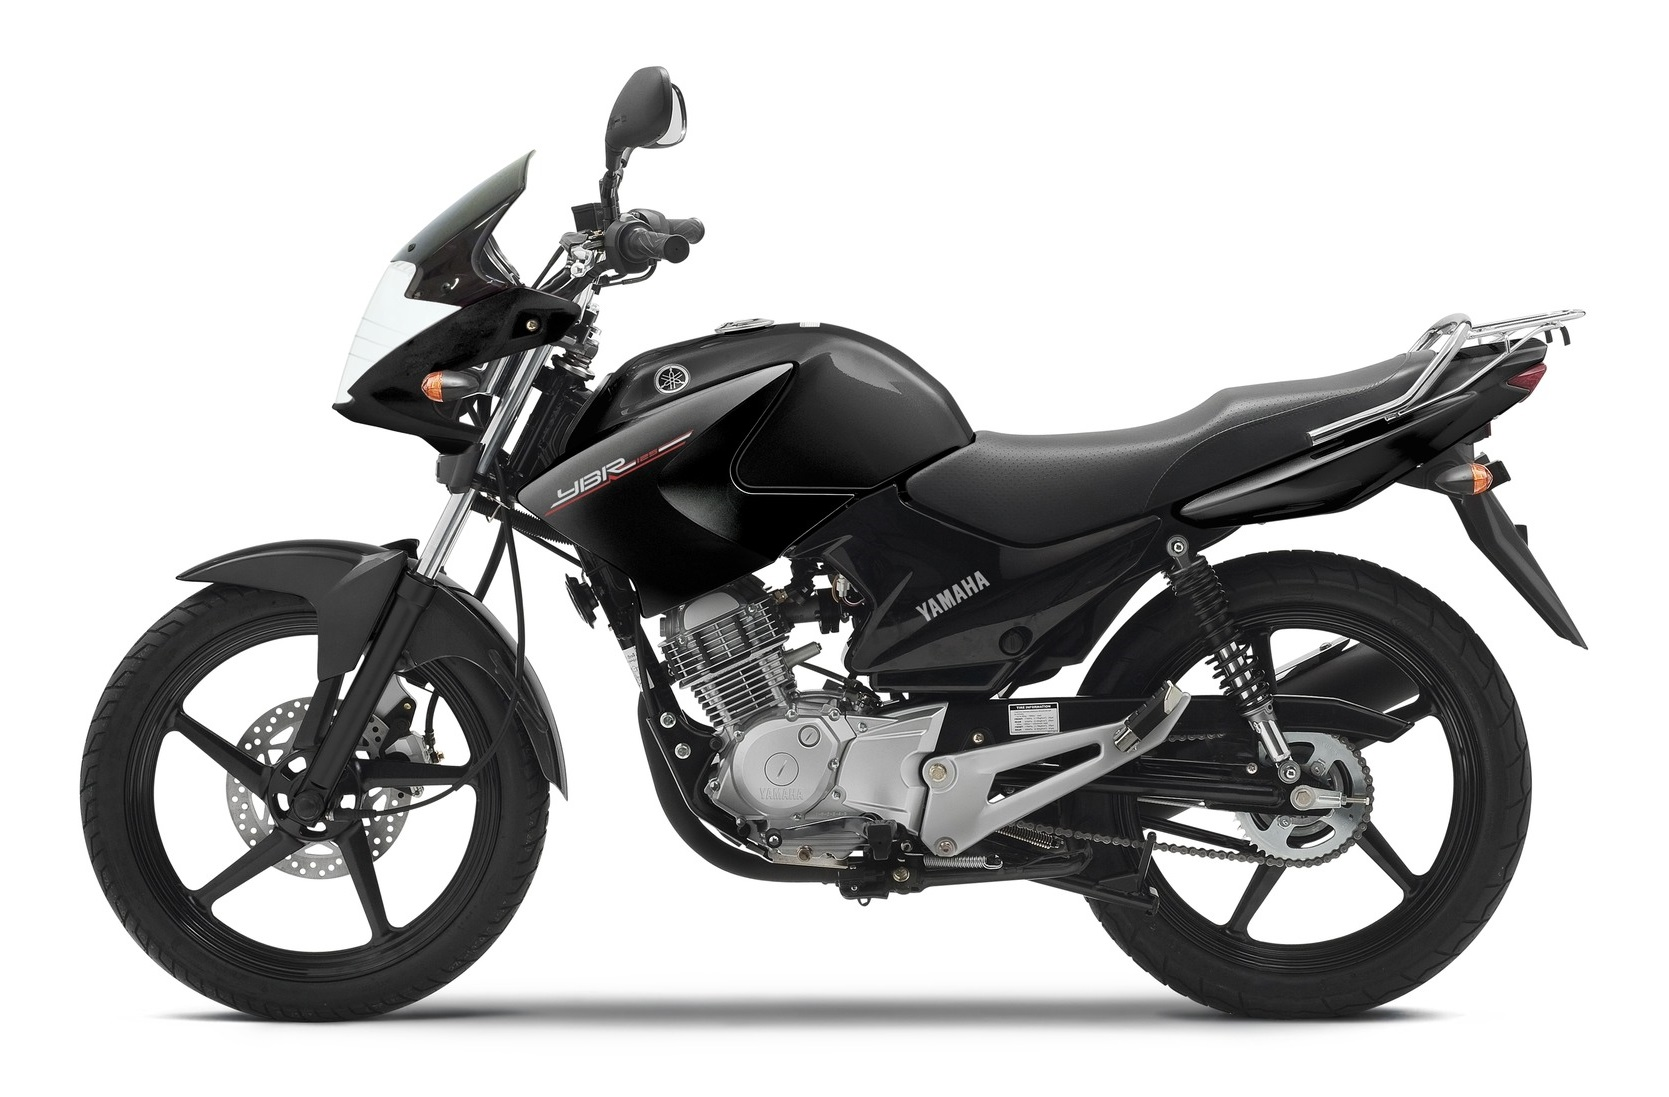 Yamaha Bike Prices 2021 in Pakistan with Features and Other Details